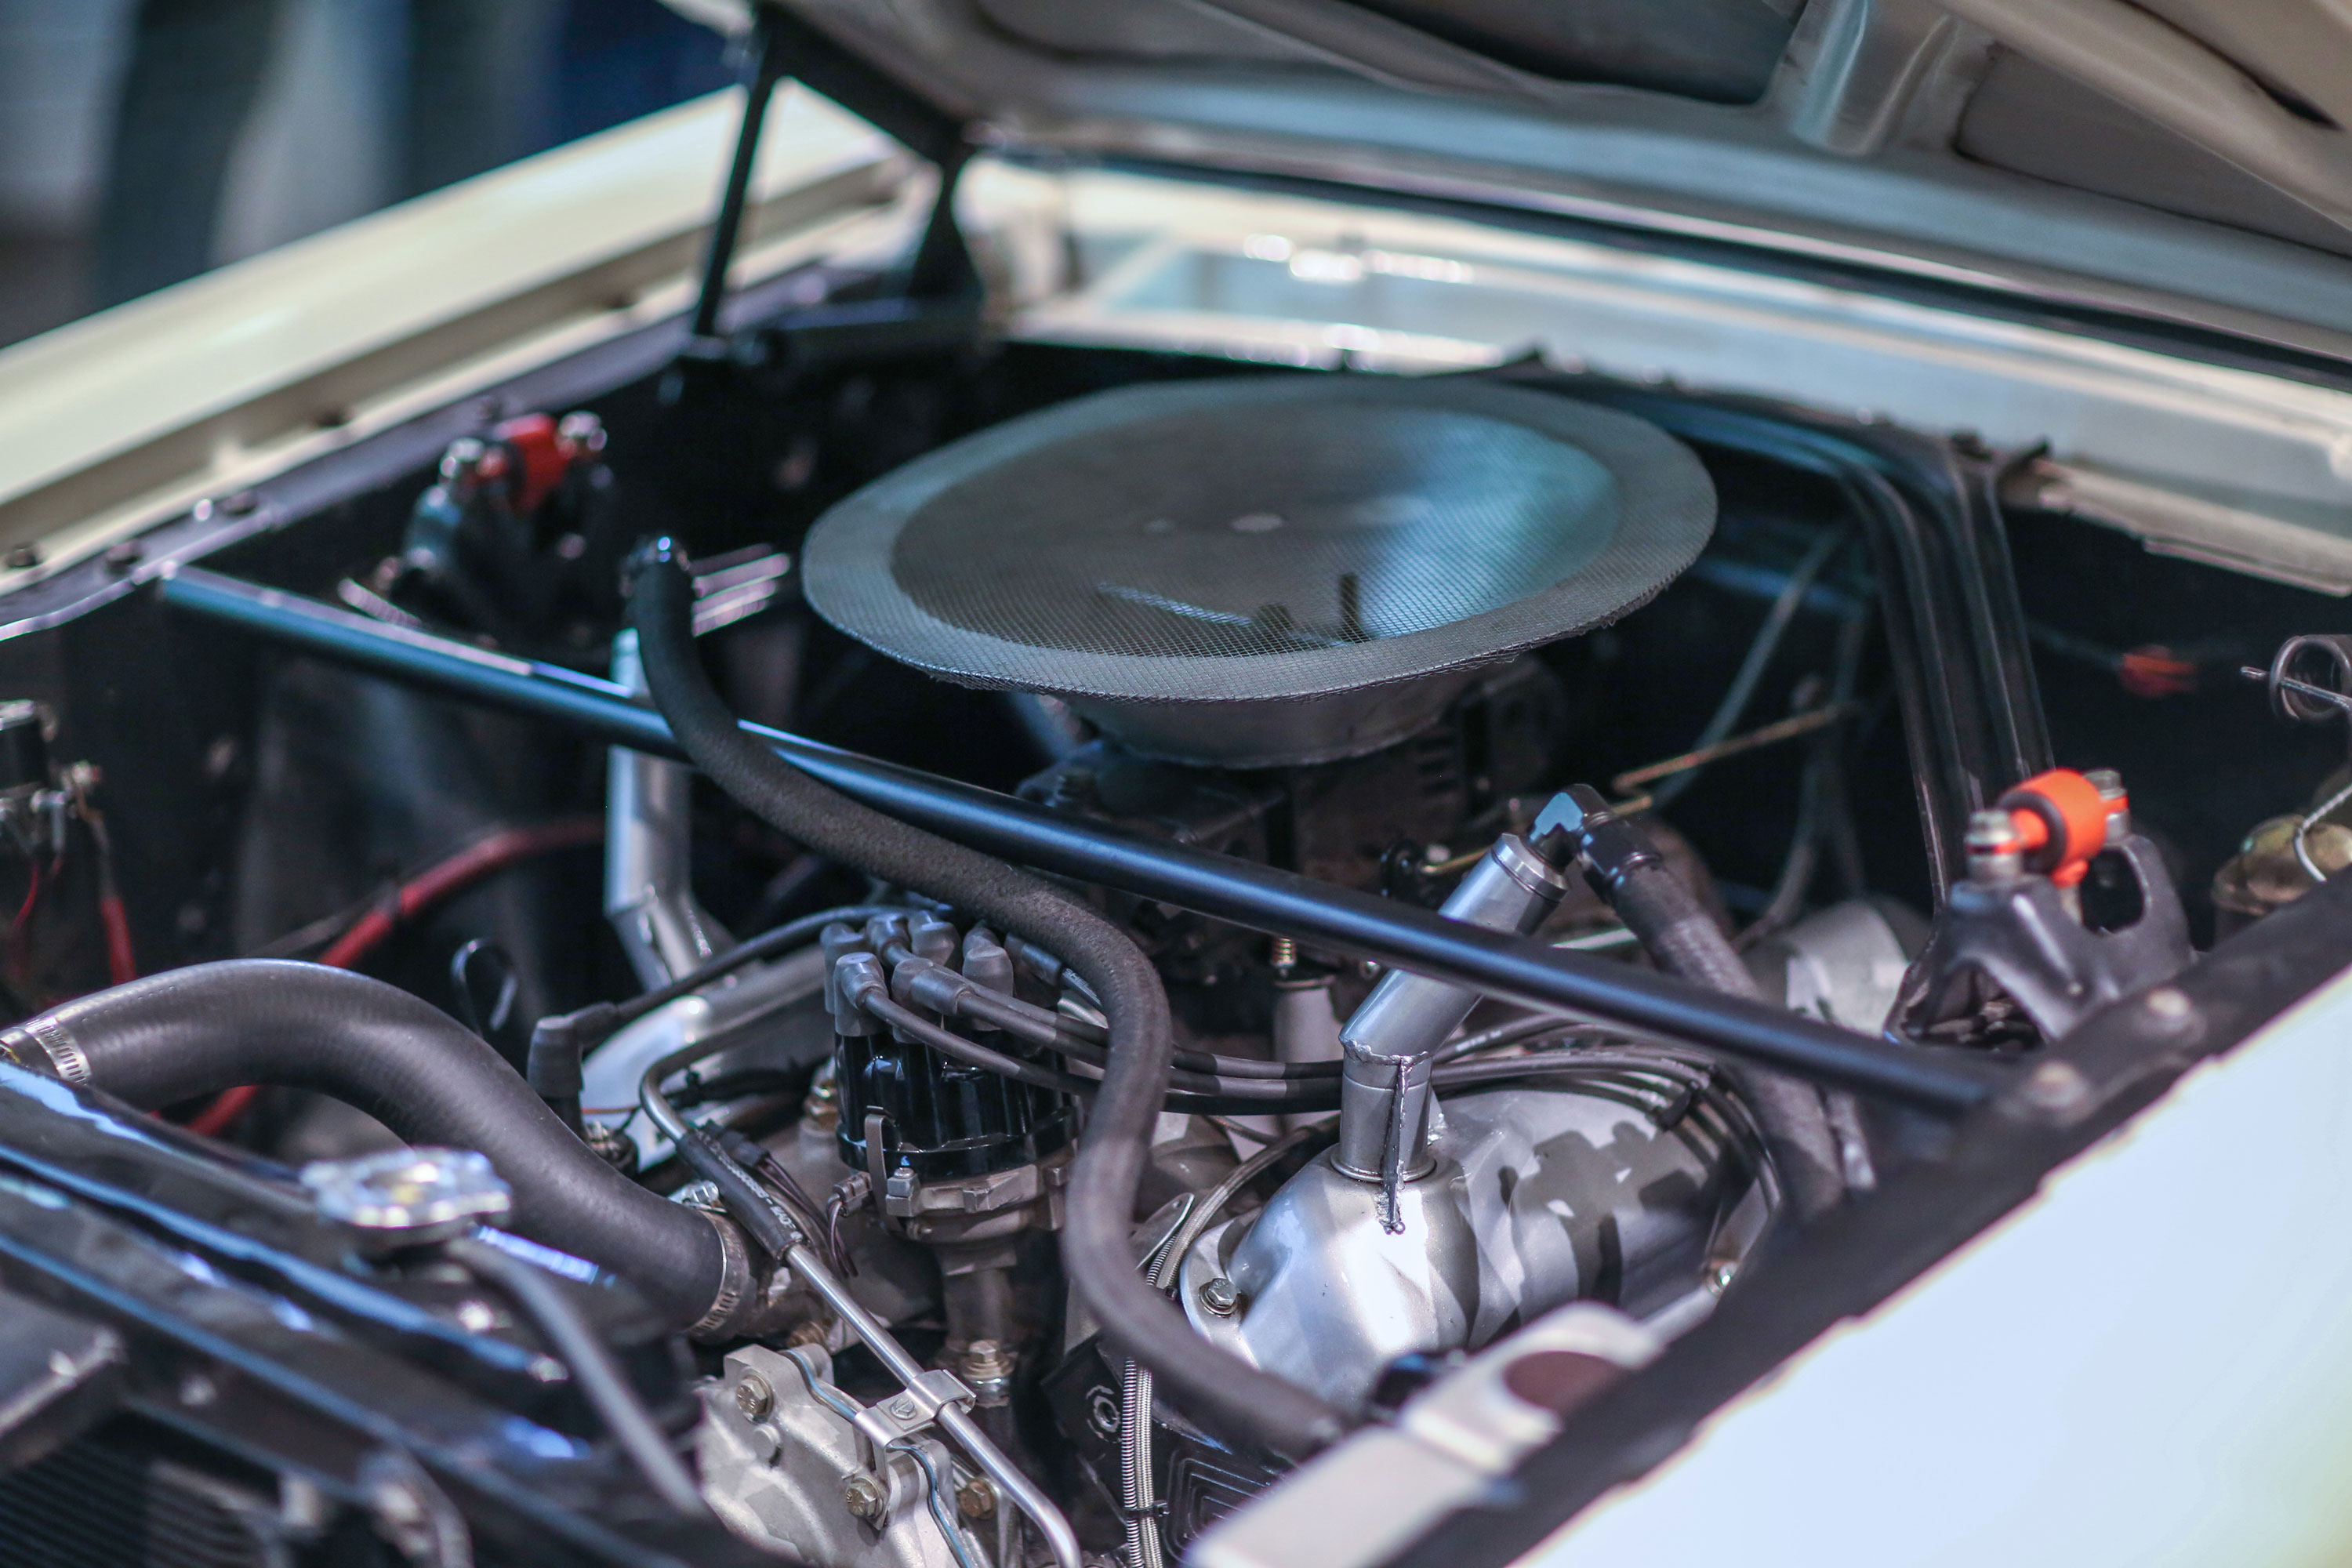 Buyers can opt to have the 289 cu-in V-8s rebuilt to factory spec or select a number of stroked Ford small-blocks from Carroll Shelby Engine Company that can bring the power up to a very respectable level. The 98i car we drove had a 440-hp small-block with aluminum heads, roller cam, and a single Holley four-barrel carb.